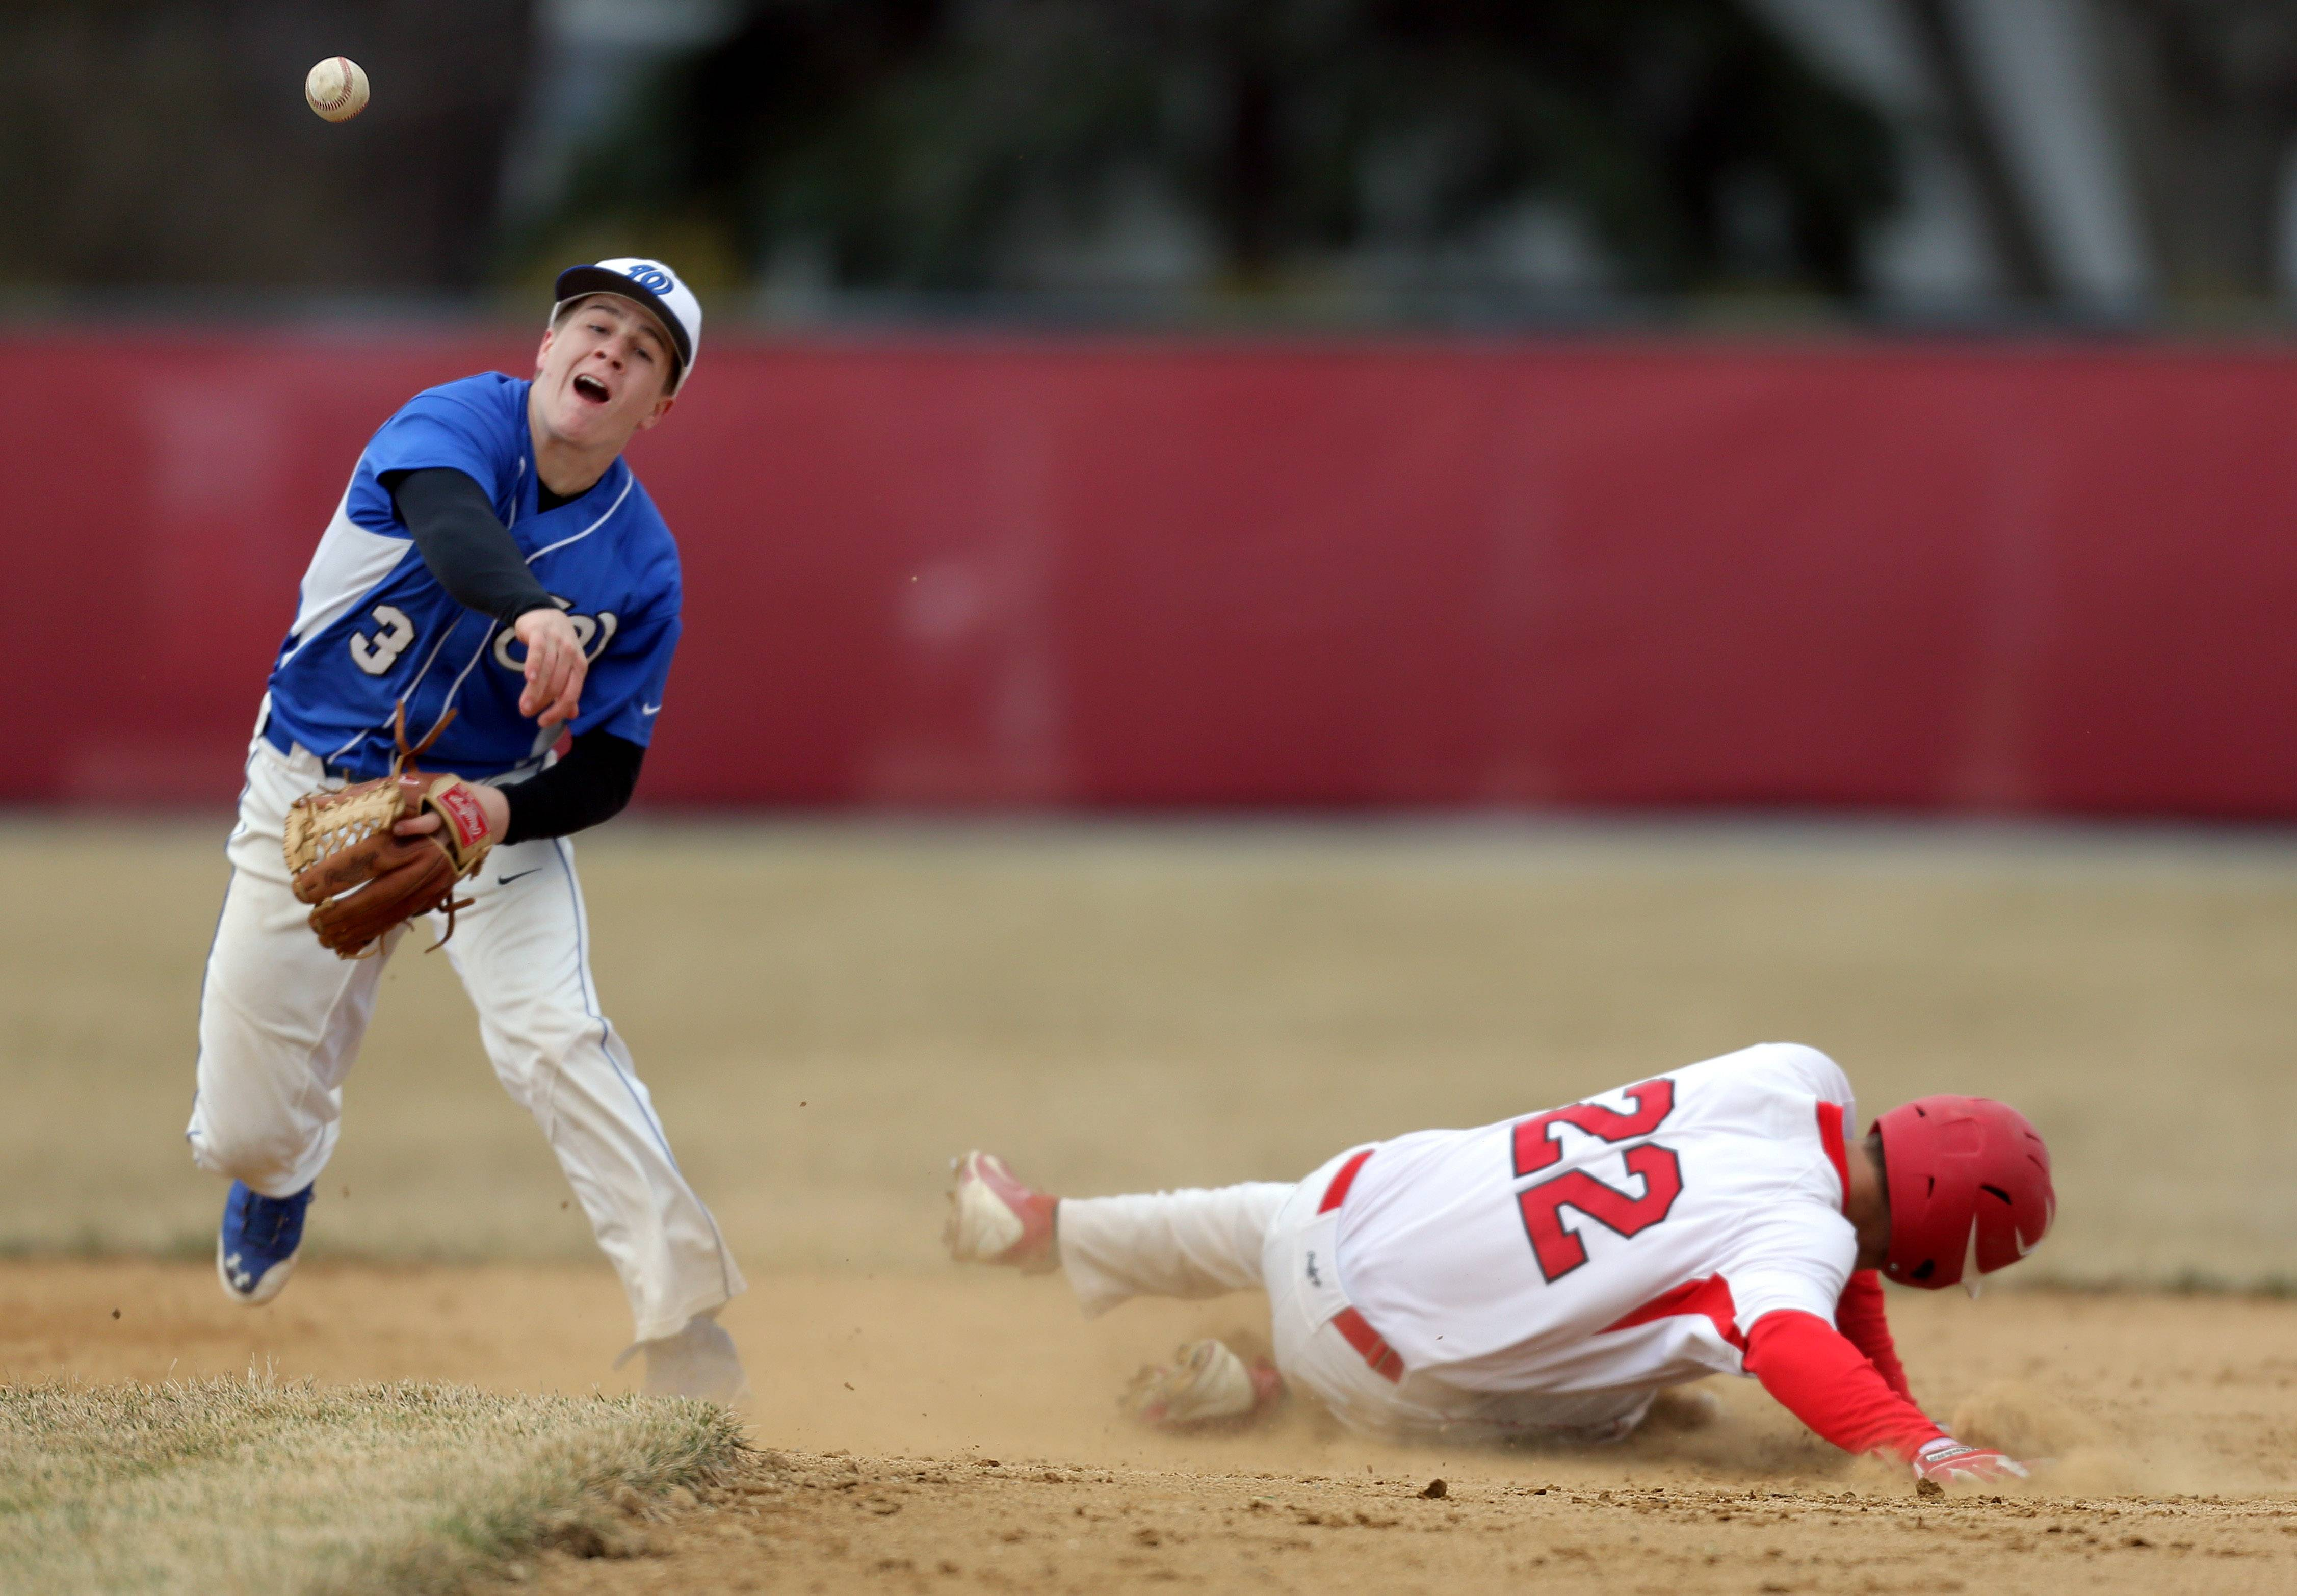 Wheeling's Matt Volmer, left, tries to turn a double play as Mundelein's Ryan Hollander is out at second on Wednesday at Mundelein.